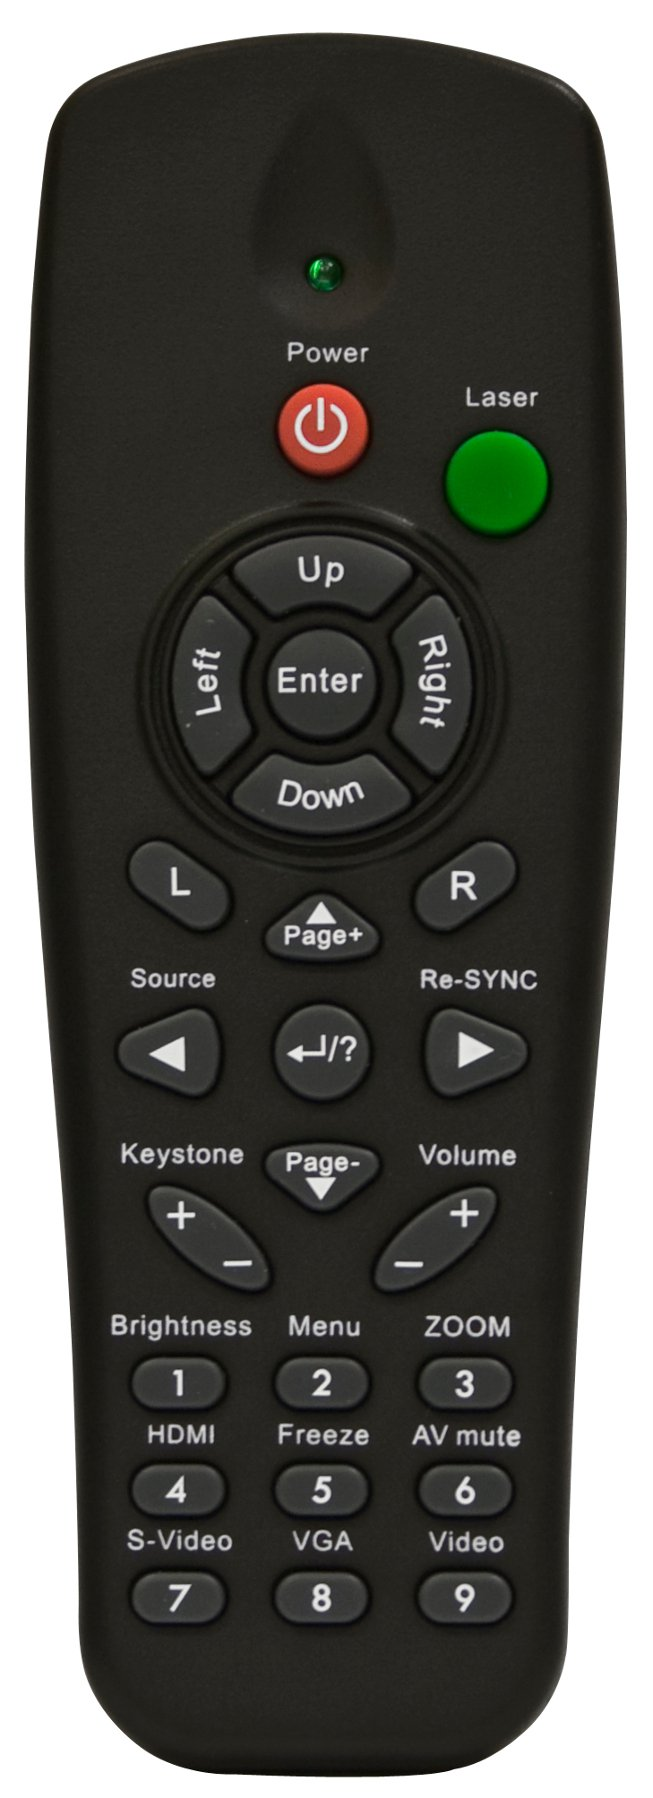 Remote Control with Laser + Mouse Function